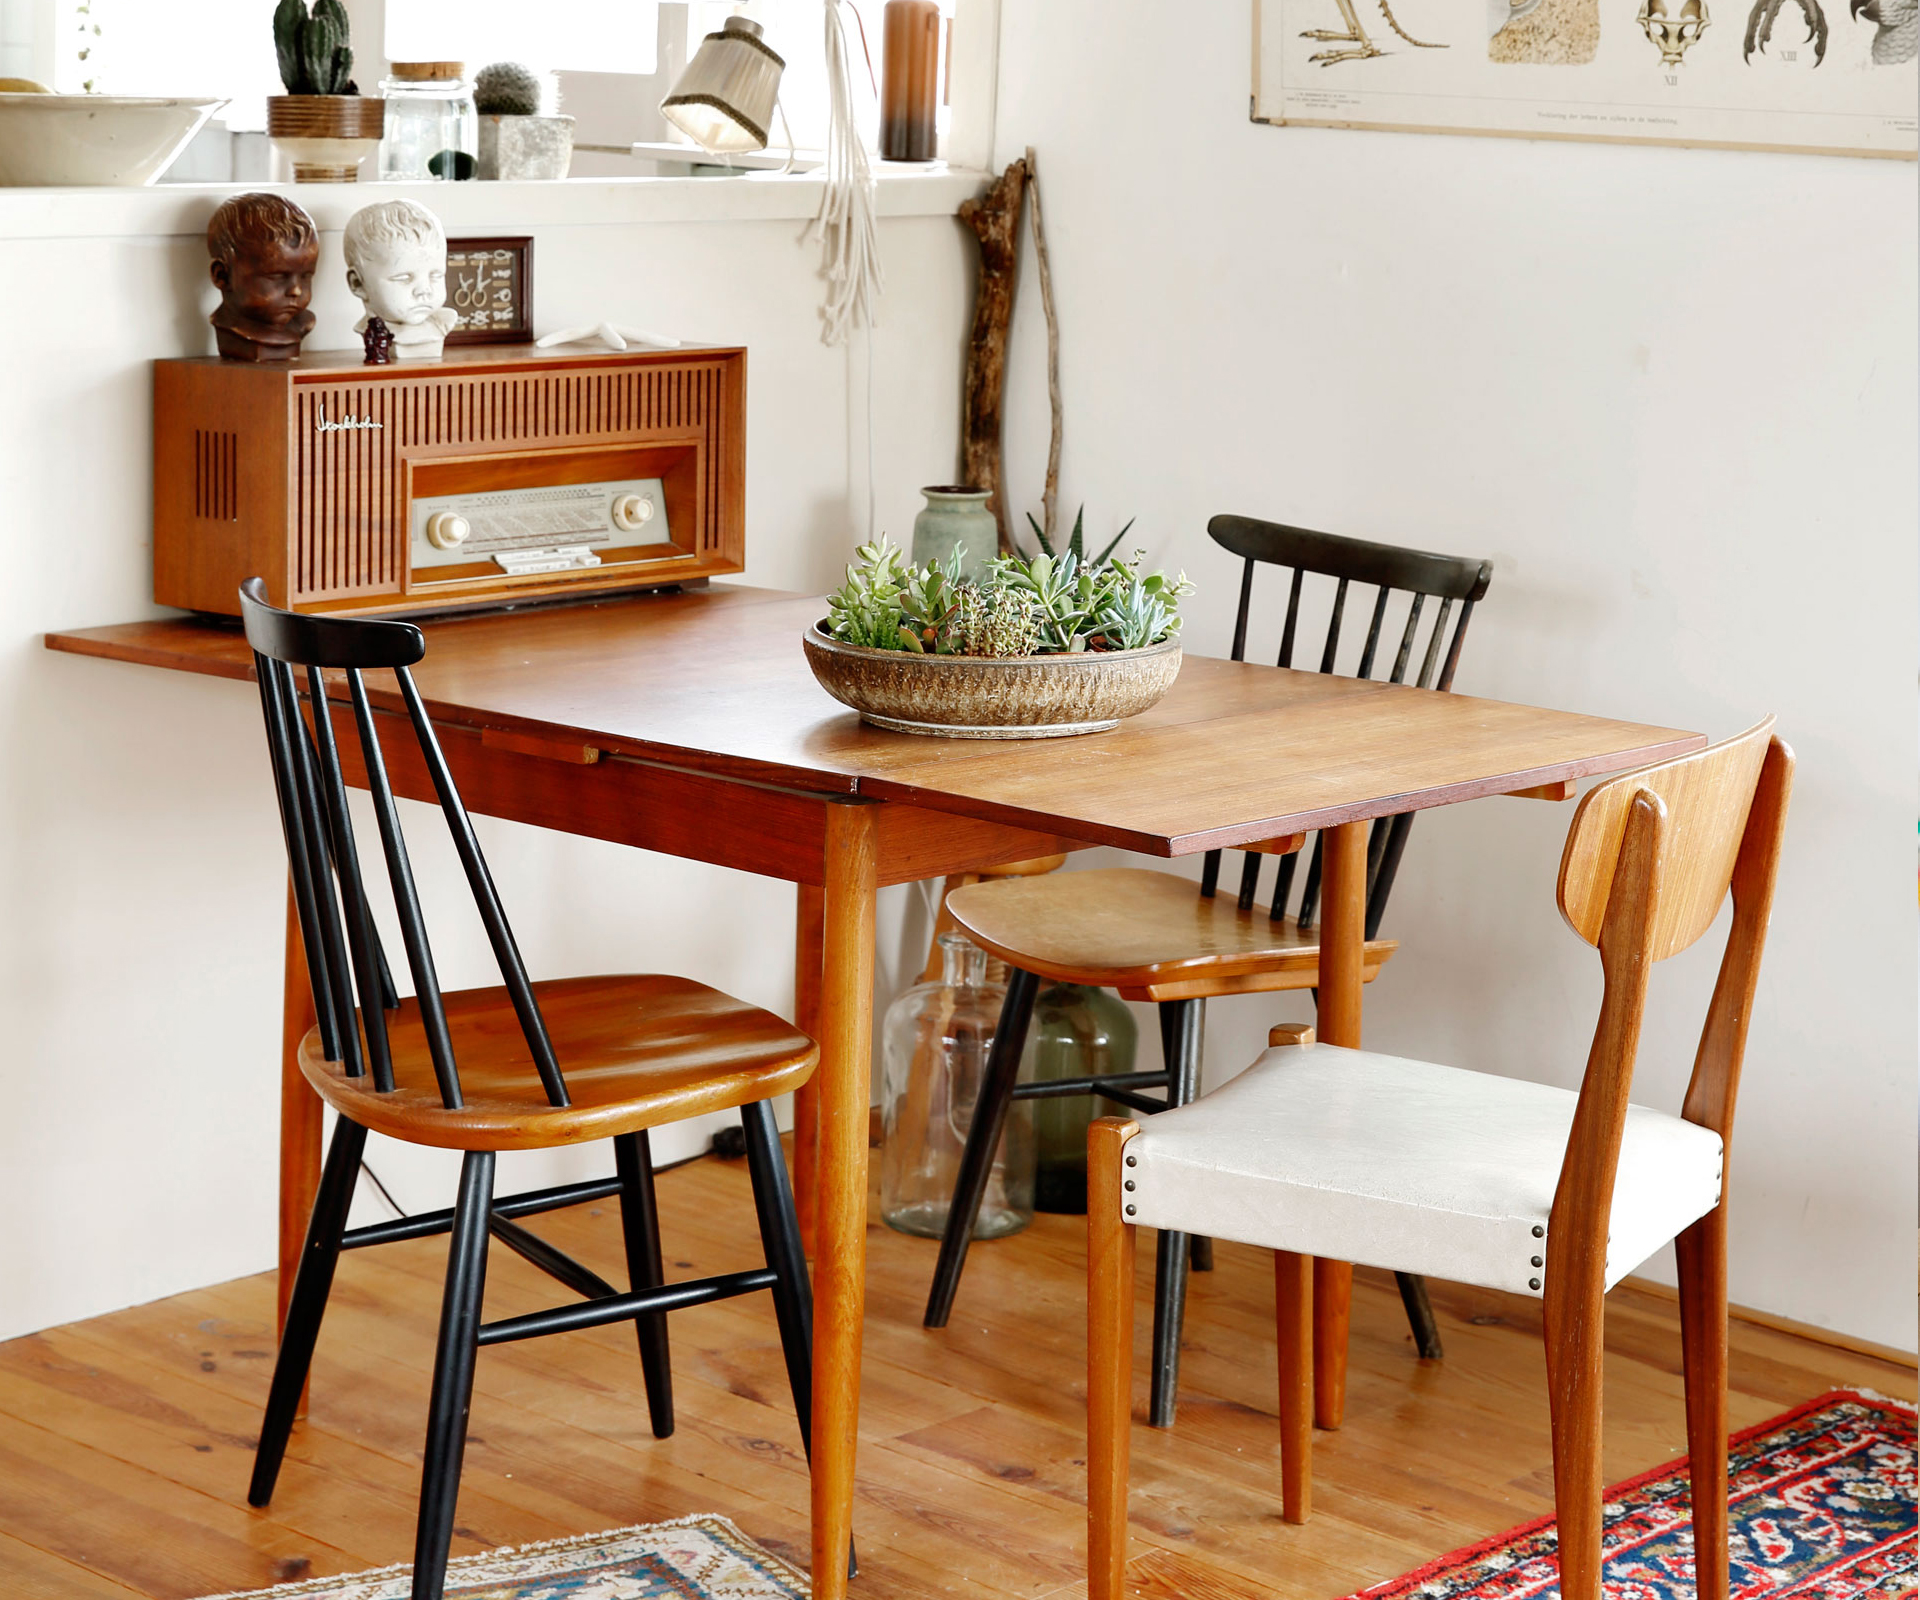 5 Easy Upcycling Ideas That Will Give Your Home Unique Style